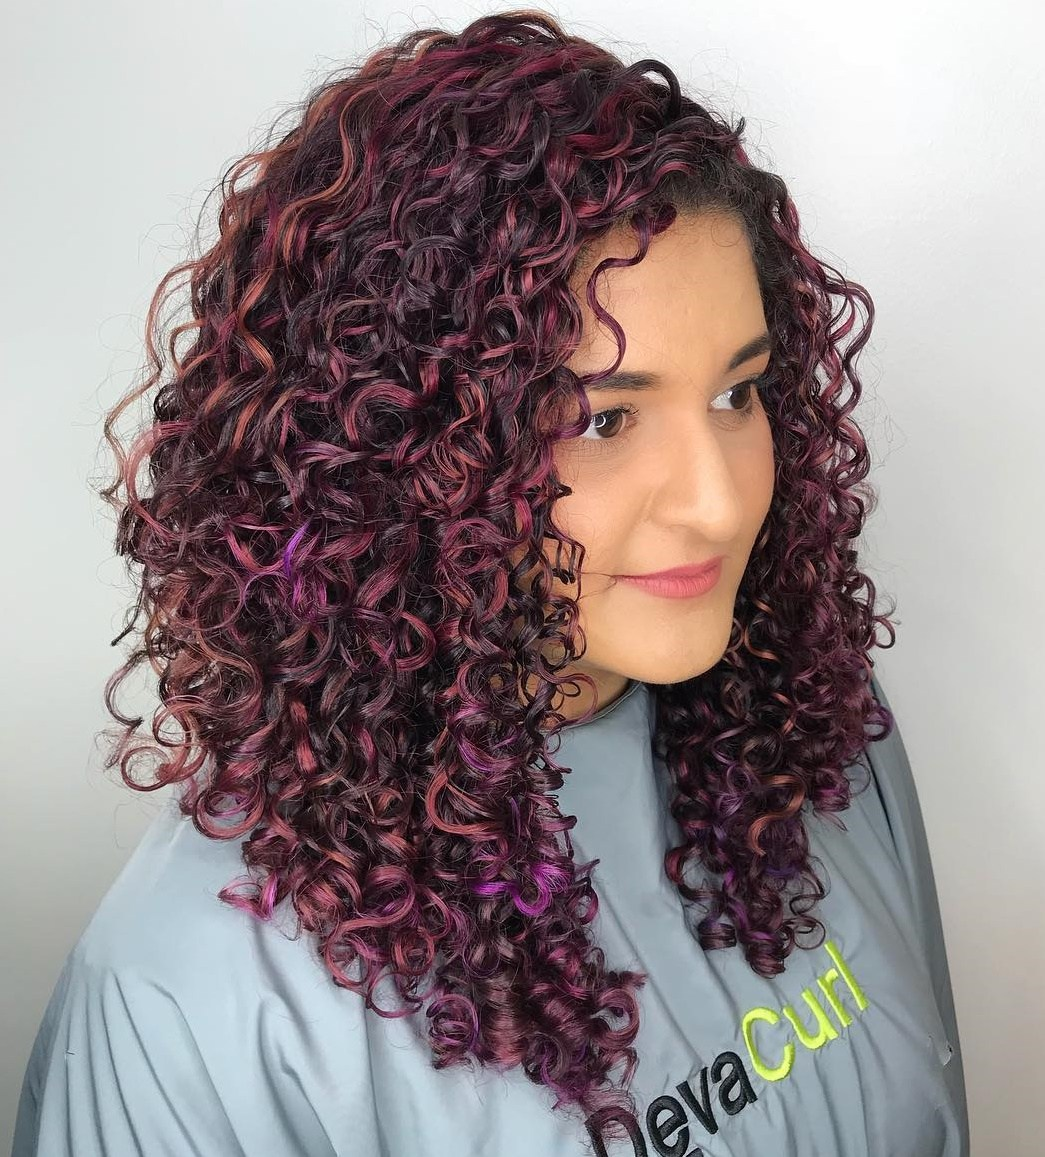 Purple Curly Hair Style – Latest Style Trend For 2021